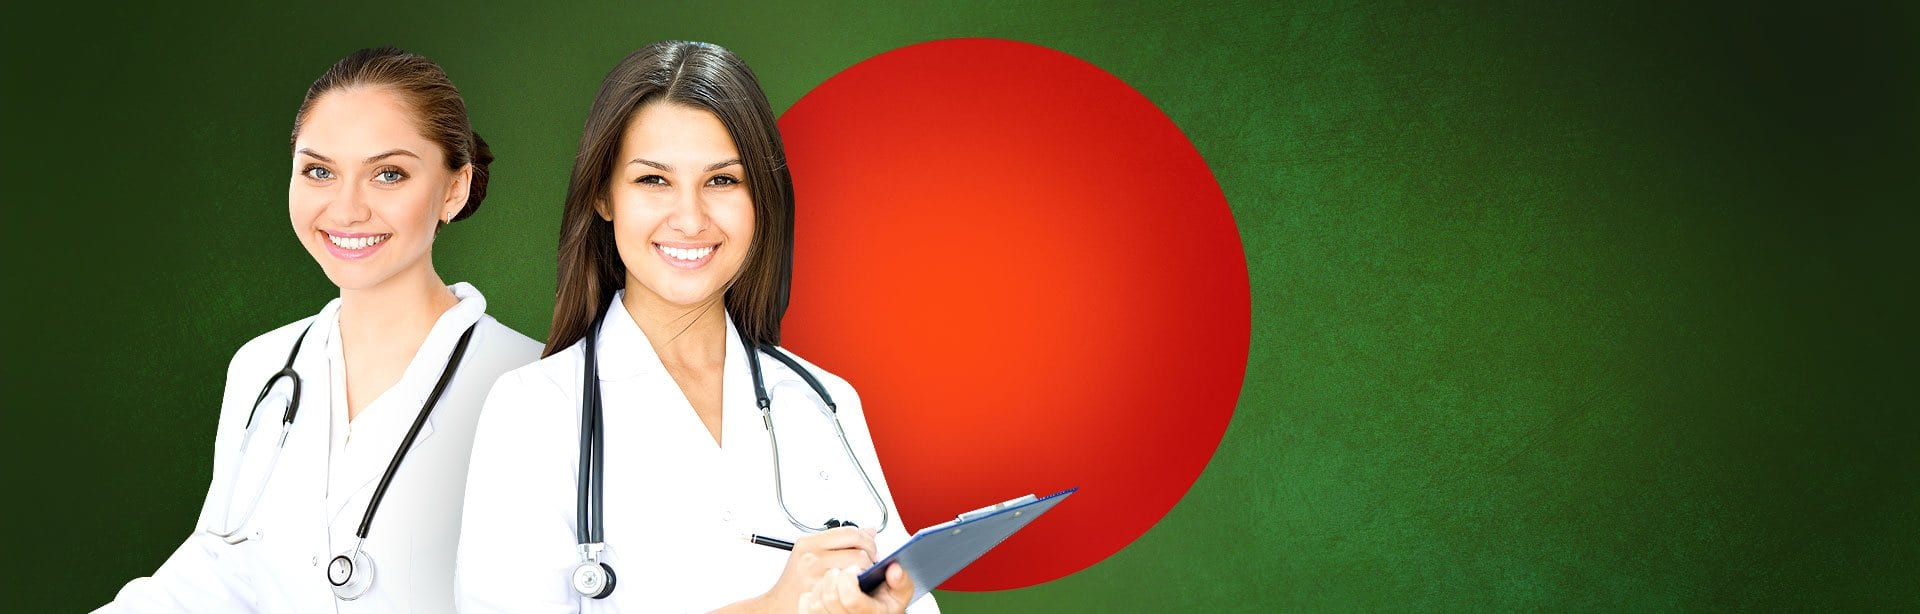 MBBS in Bangladesh [Guide for Indian Medical Students